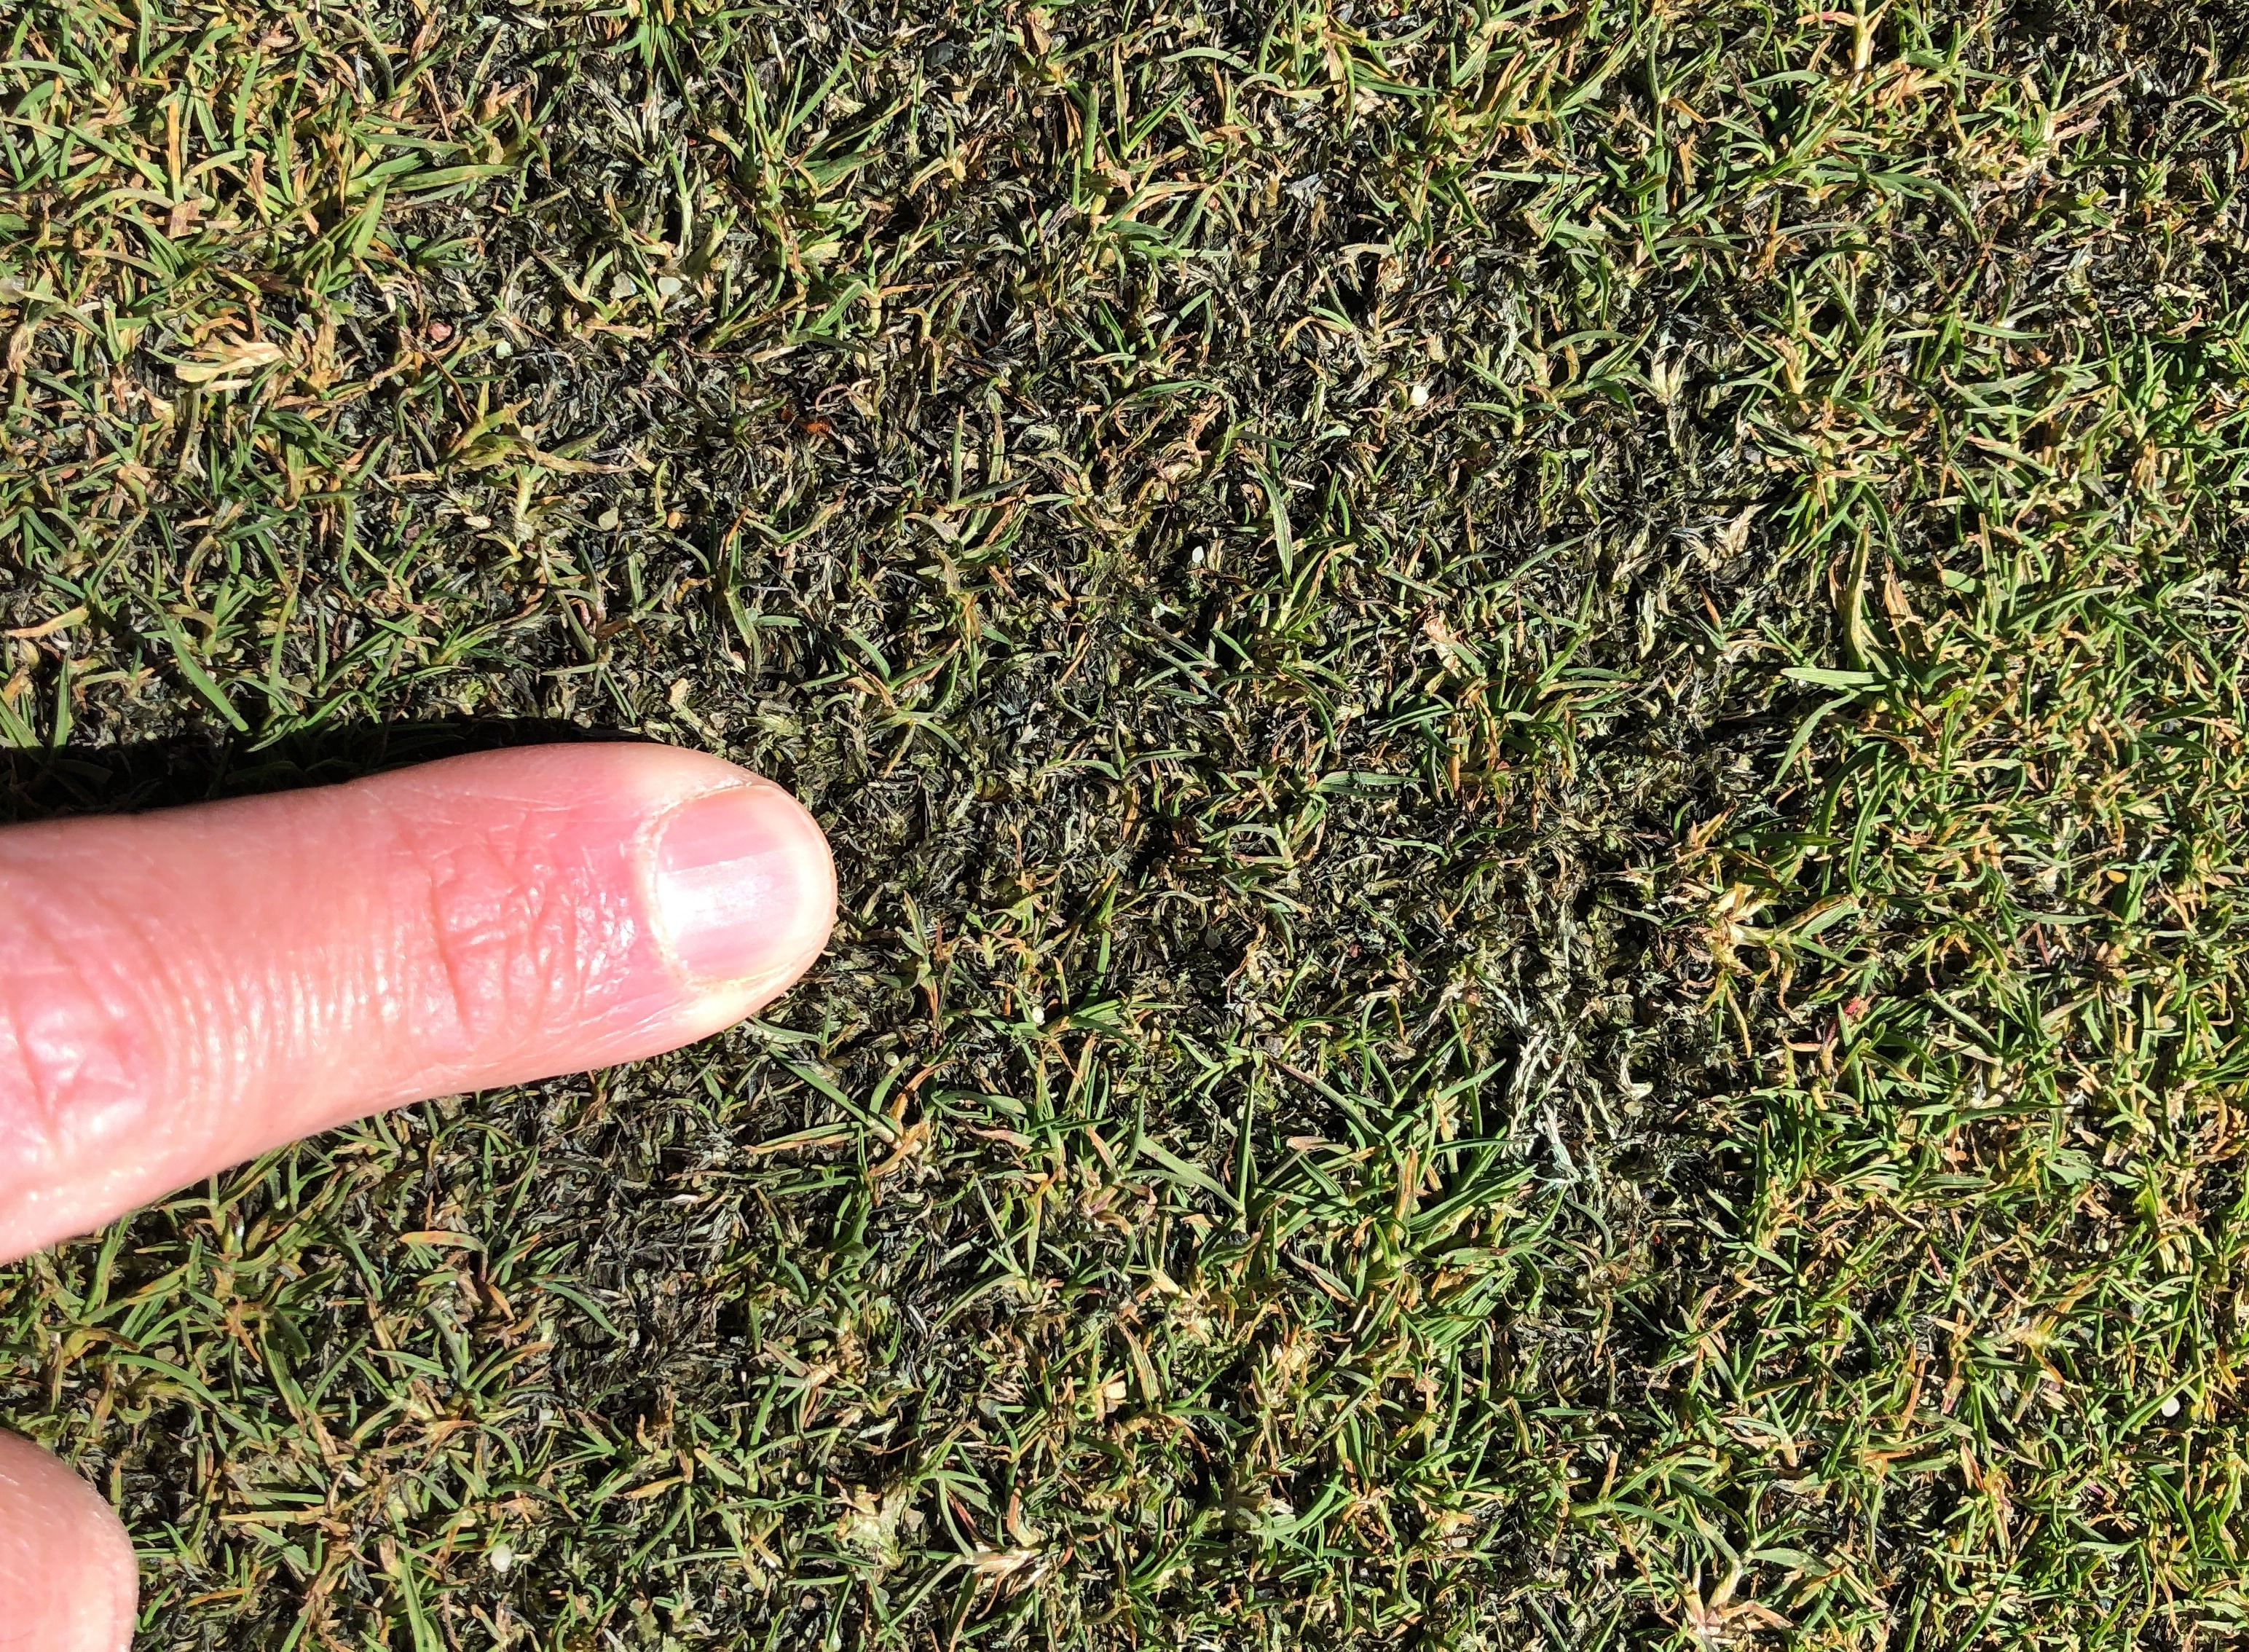 Up close bentgrass